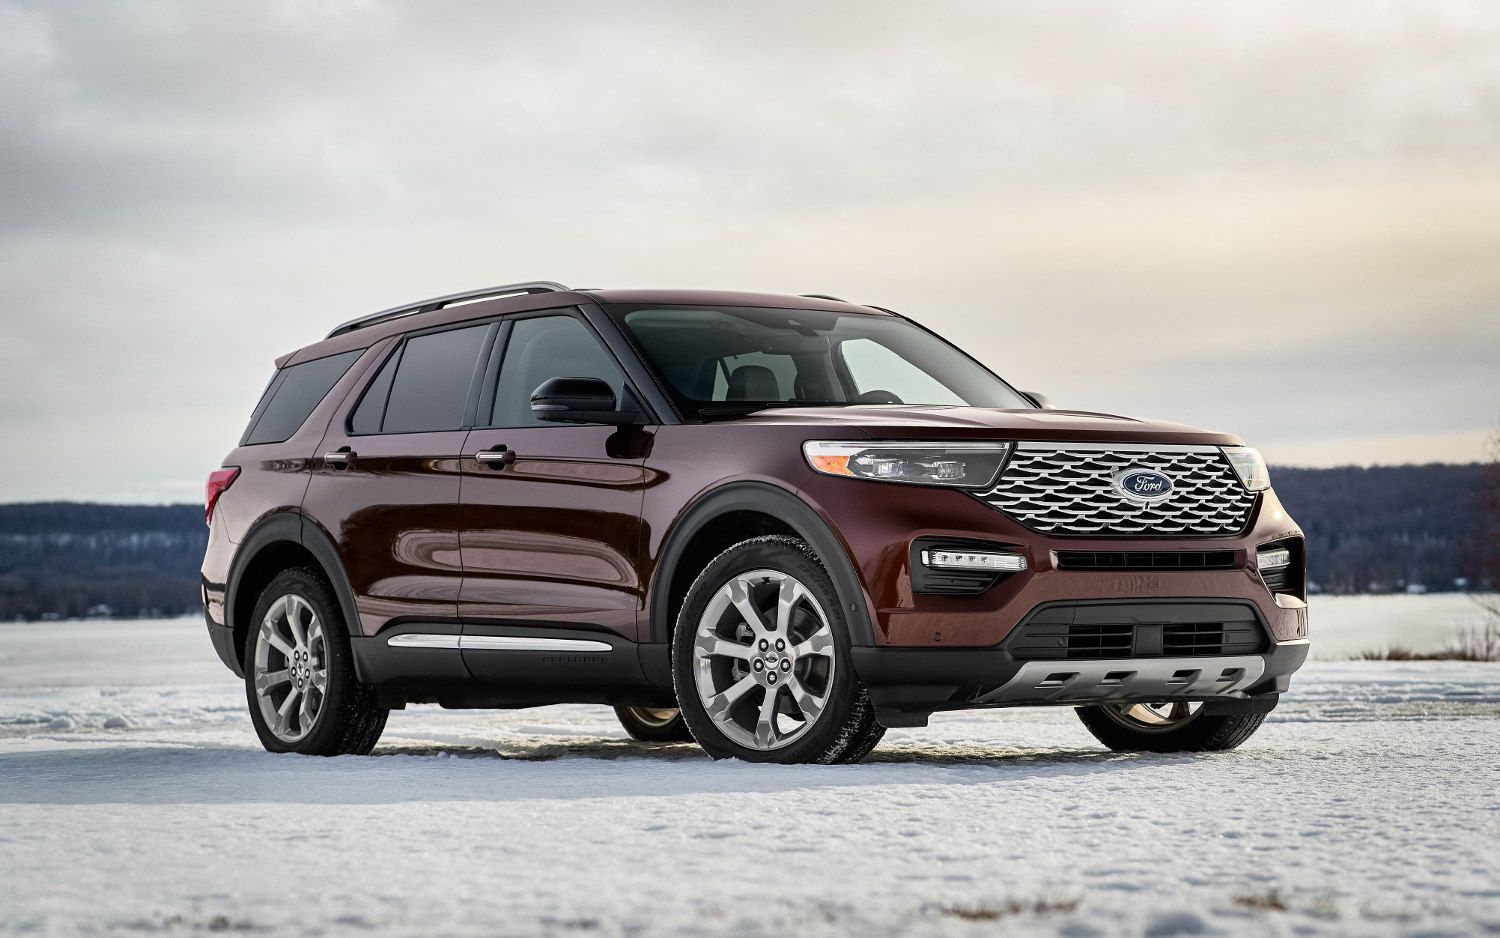 2020 Ford Everest Research New Explore 2020 Ford Everest